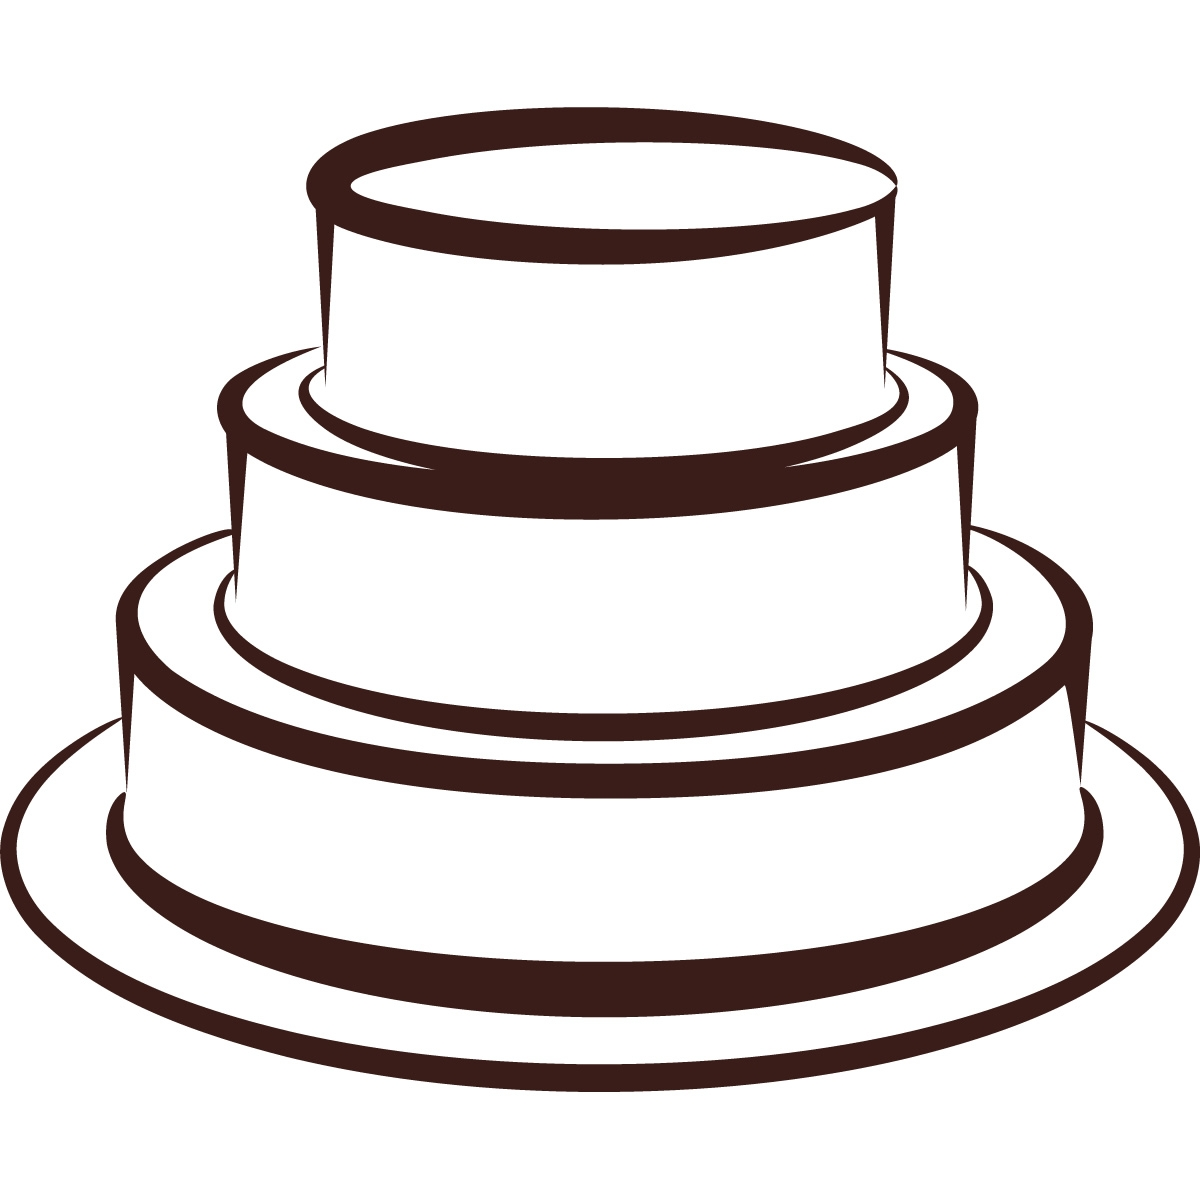 Tiered Cake Clipart.